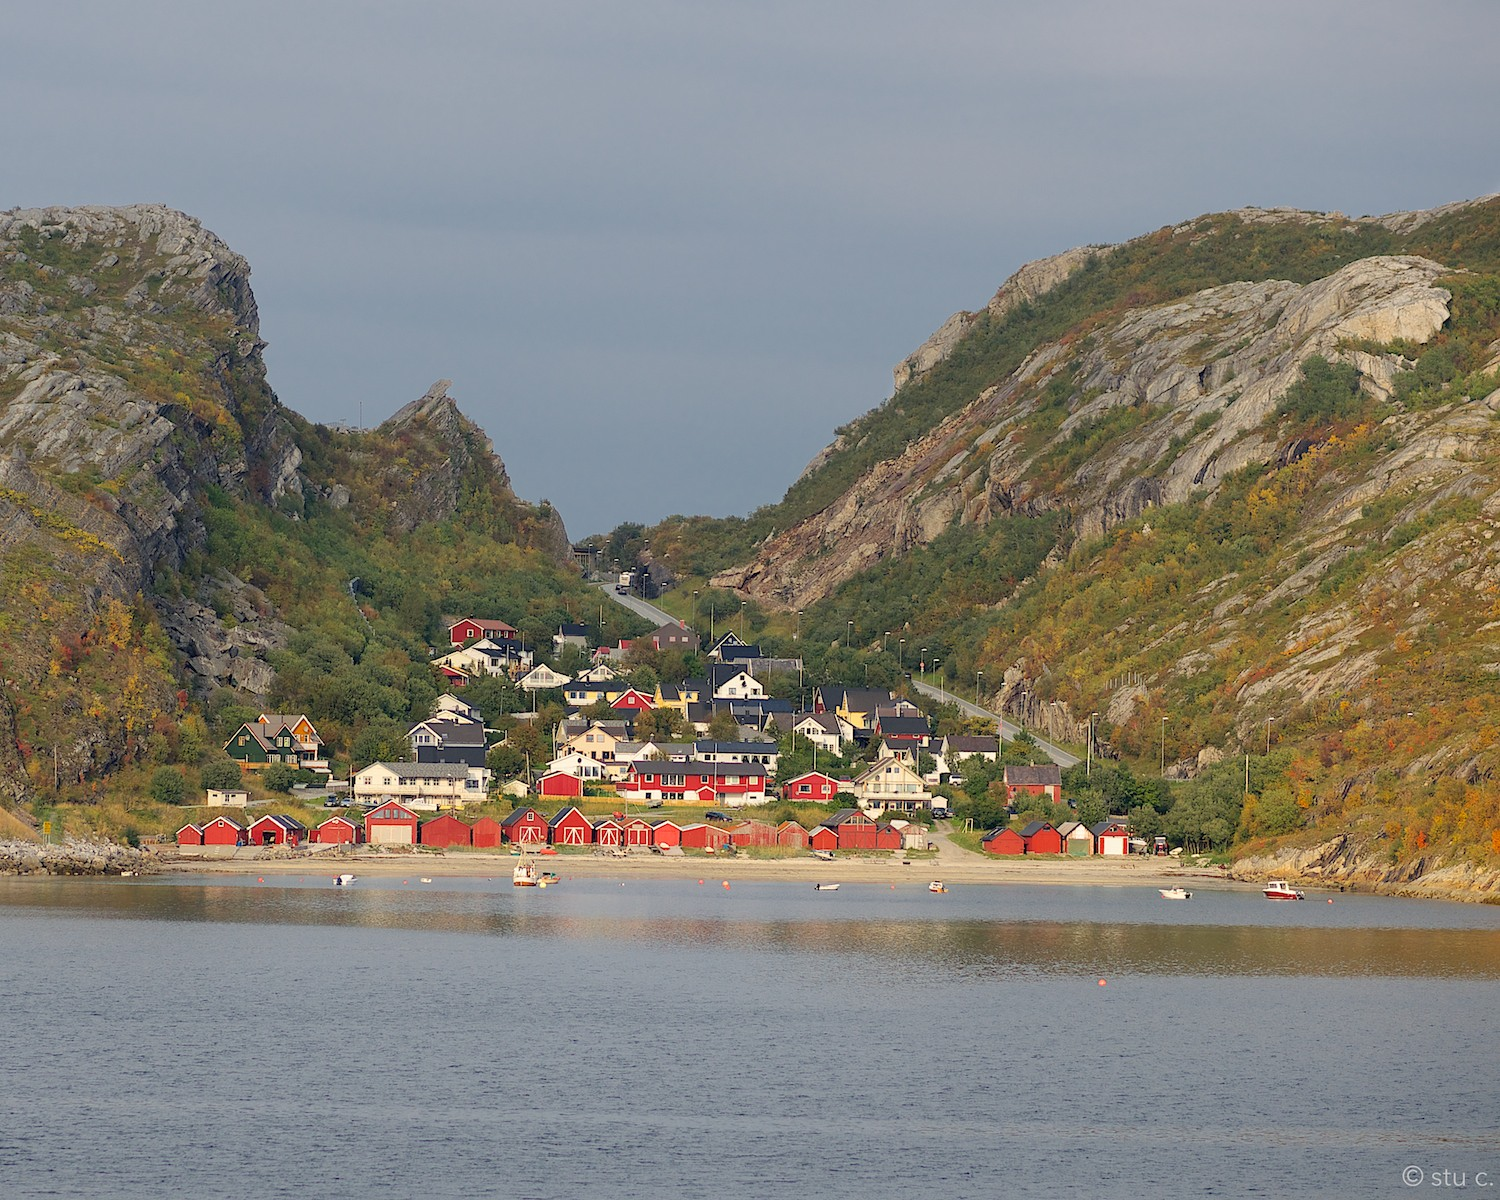 Just leaving the port of Bodo, the ferry sailed past this hamlet, a tiny enclave calledKvalvika